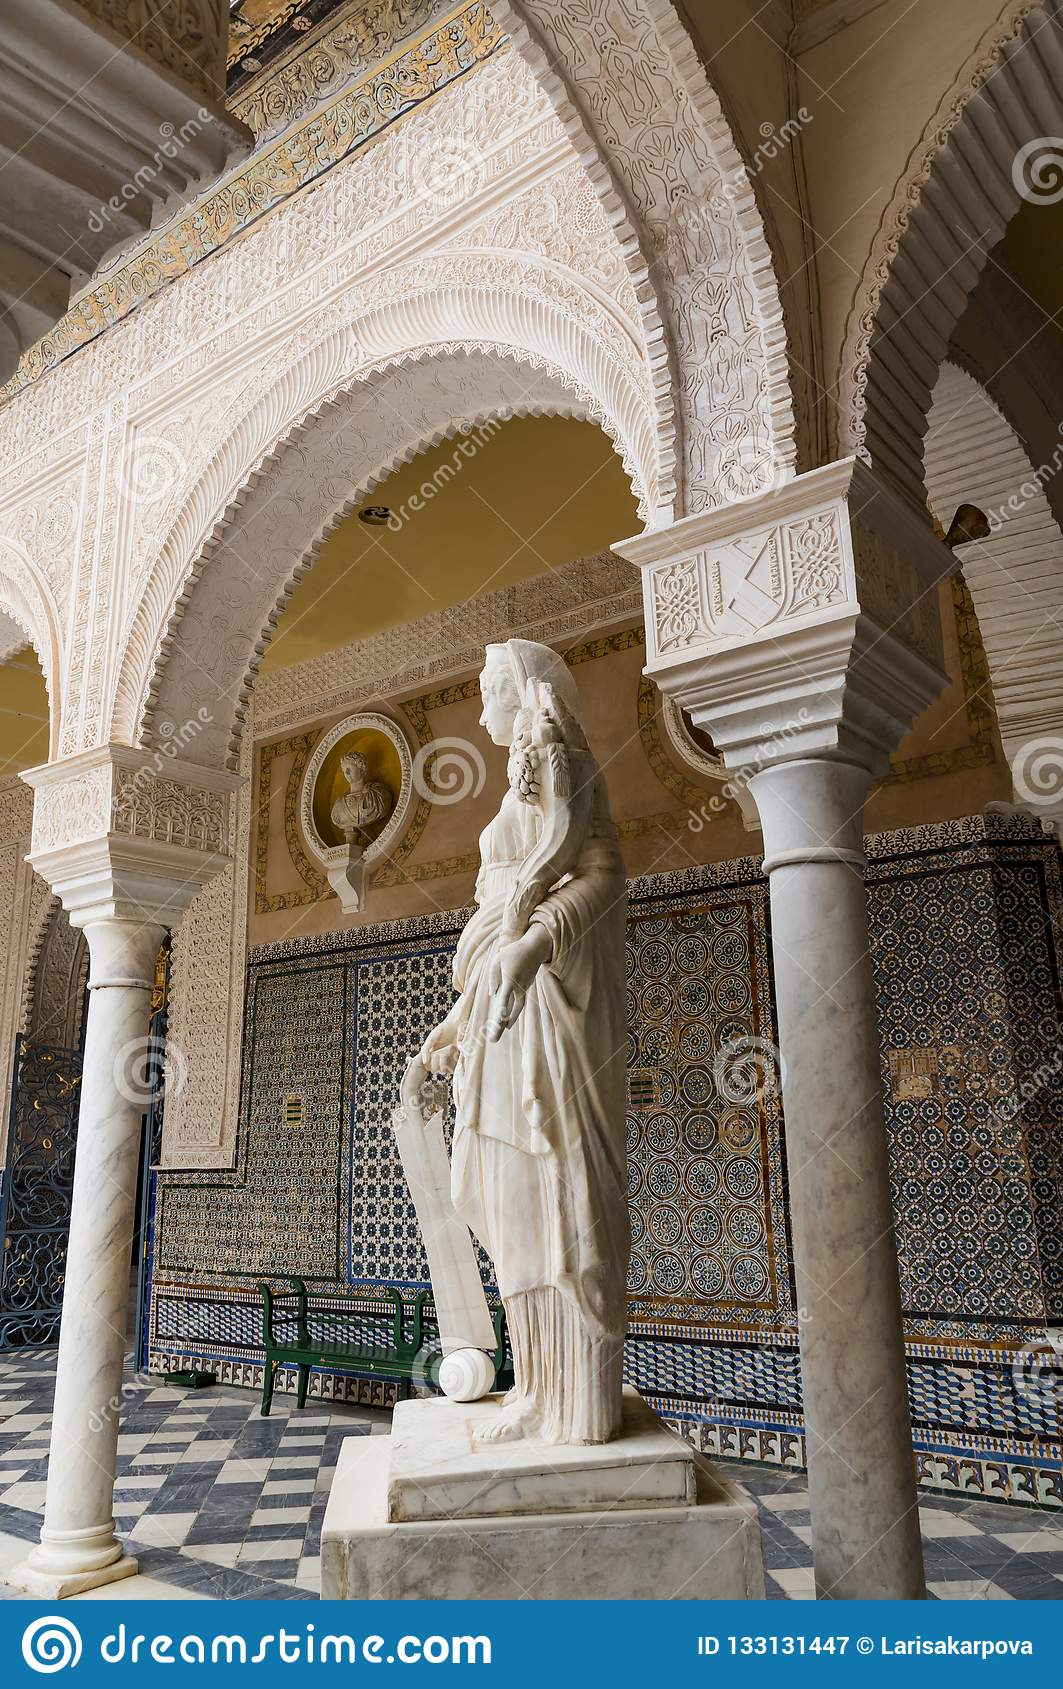 Historic buildings and monuments of Seville, Spain. hands. Statue. Marble